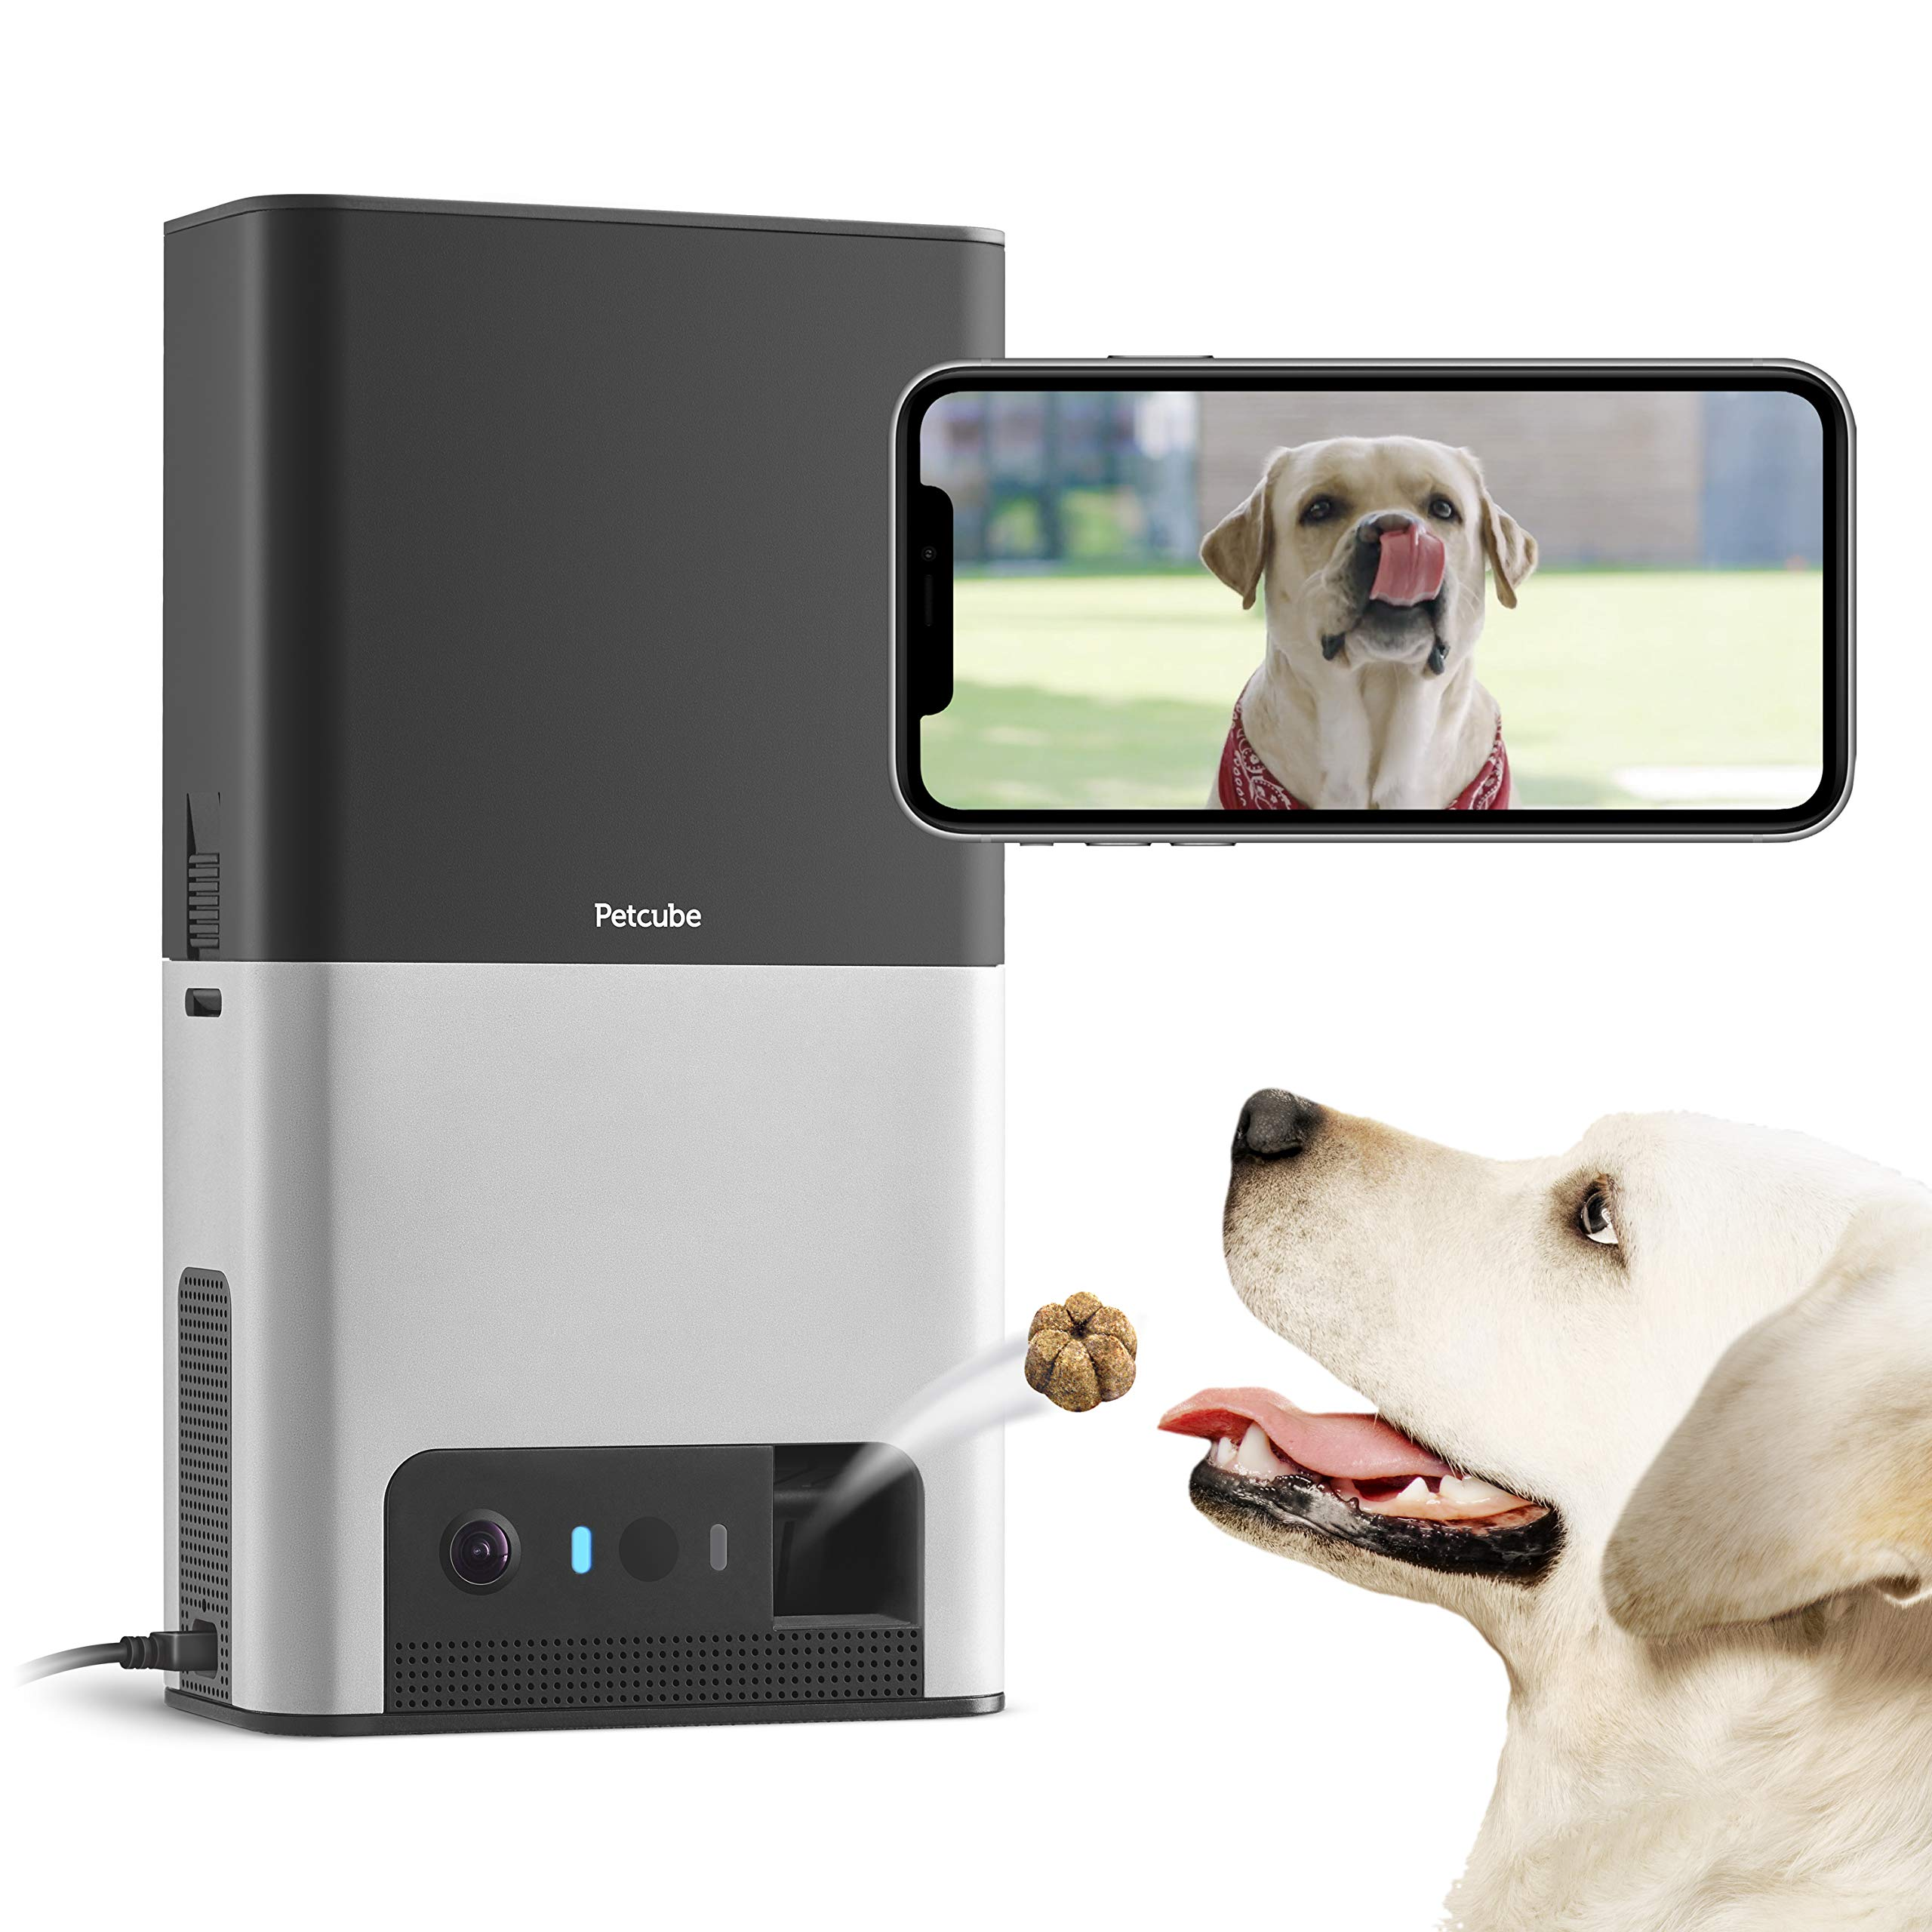 [New 2019] Petcube Bites 2 Wi-Fi Pet Camera with Treat Dispenser & Alexa Built-In, for Dogs & Cats. 1080P HD Video, 160° Full-Room View, 2-Way Audio, Sound/Motion Alerts, Night Vision, Pet Monitor by Petcube